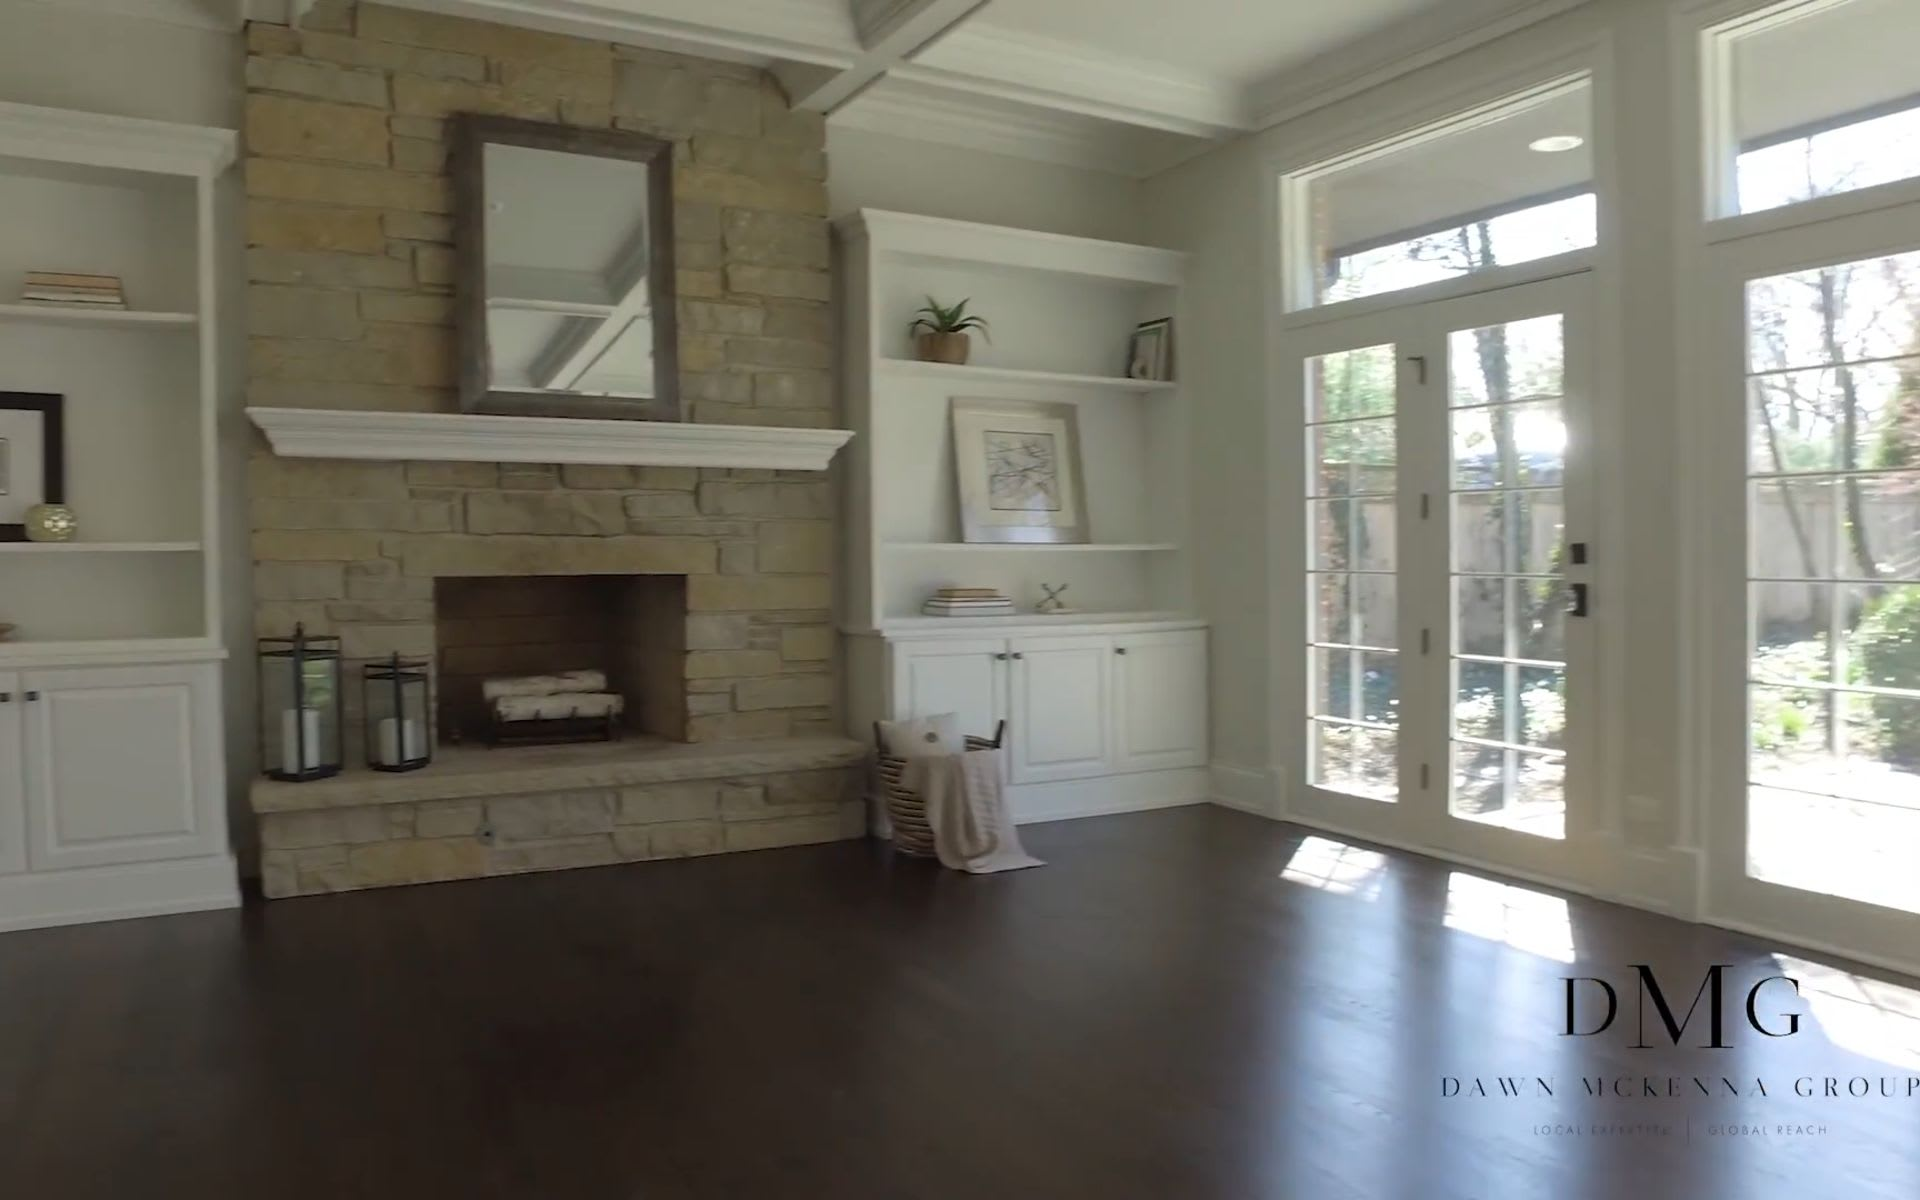 824 SOUTH COUNTY LINE ROAD, HINSDALE, IL DAWN MCKENNA GROUP video preview